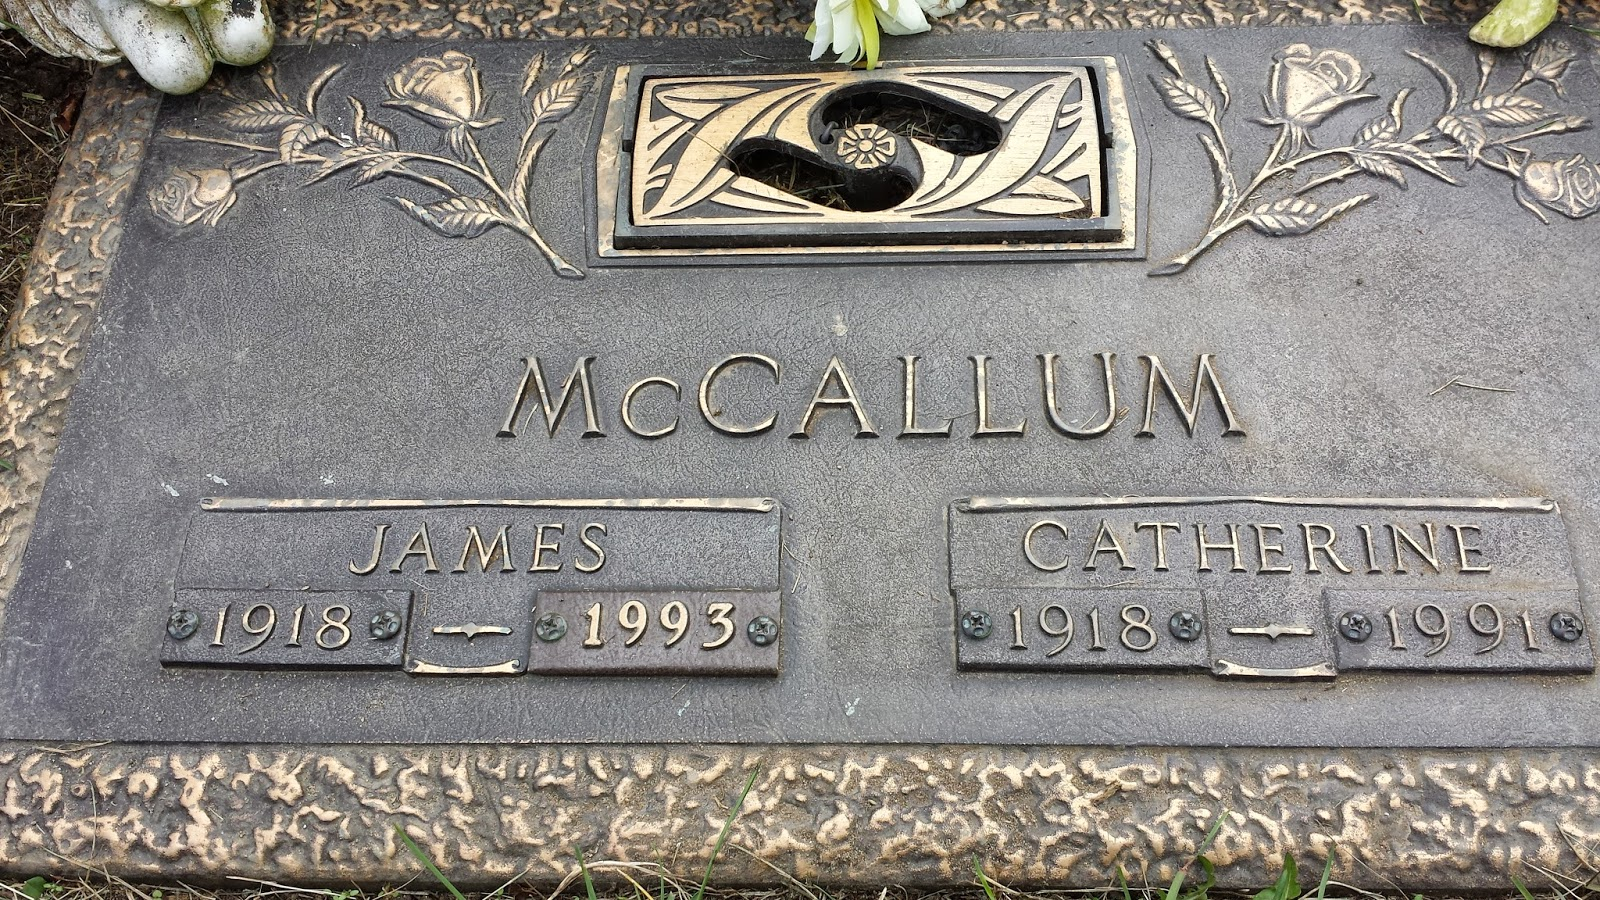 Catherine and James McCallum